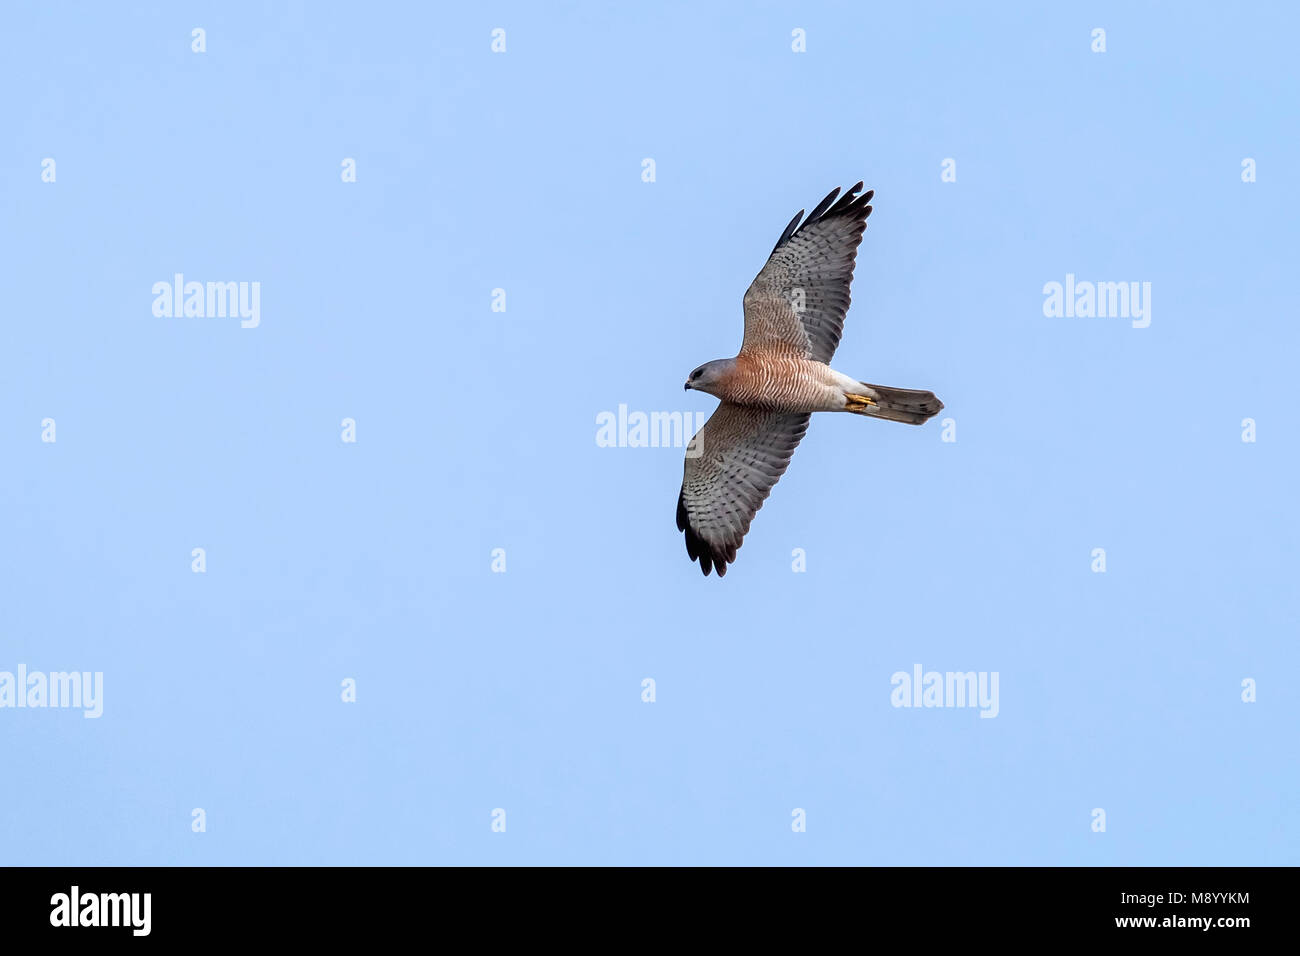 Male Levant Sparrowhawk Flying in Egypt. - Stock Image